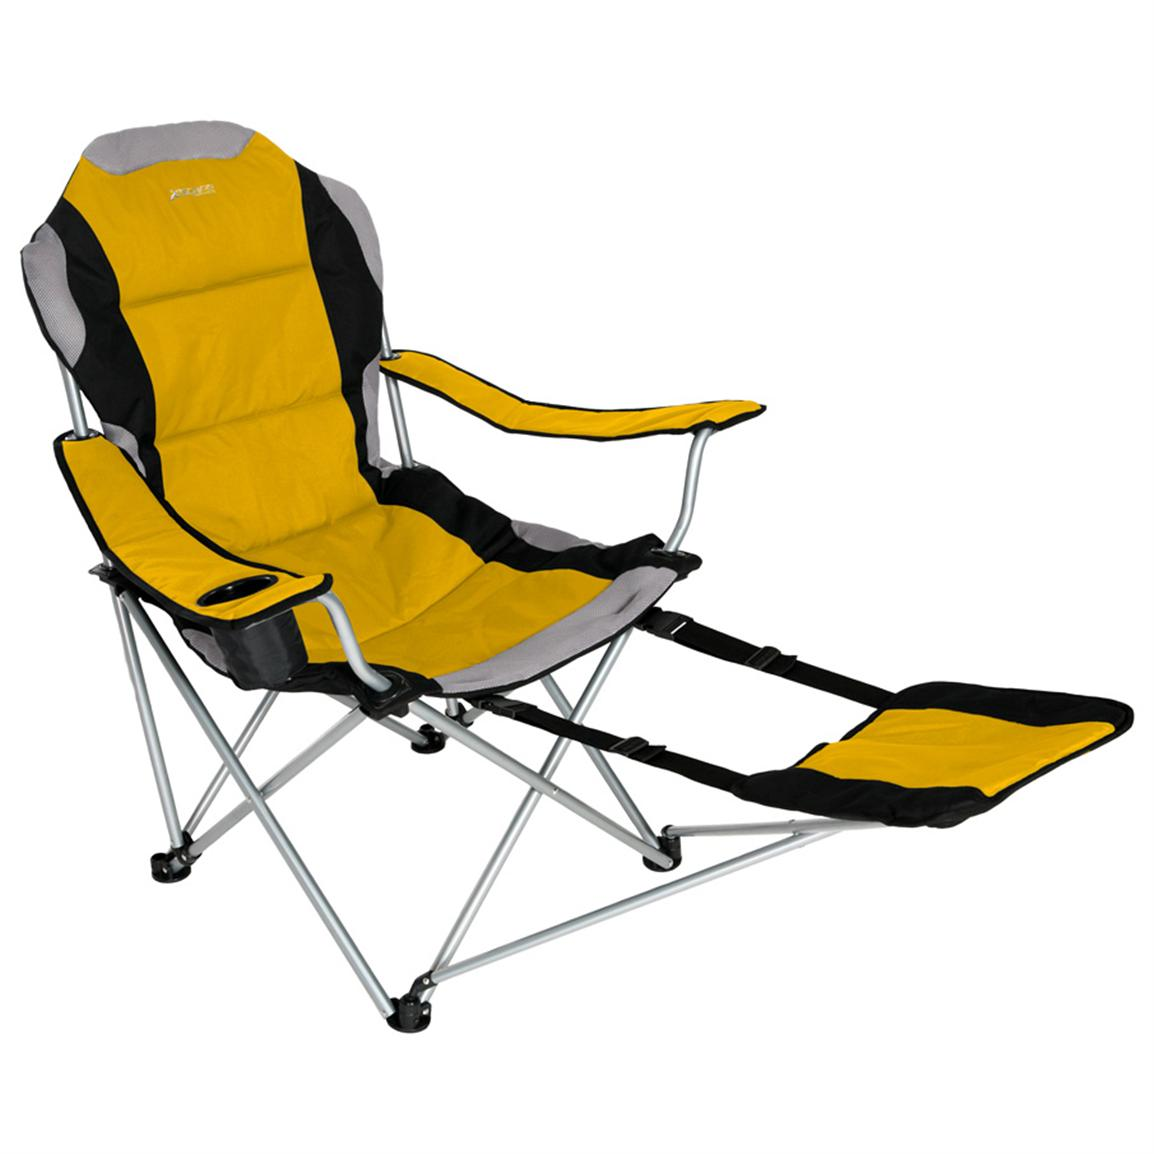 Camping Chair With Footrest Xscape Designs Sportline Xl Folding Chair W Footrest